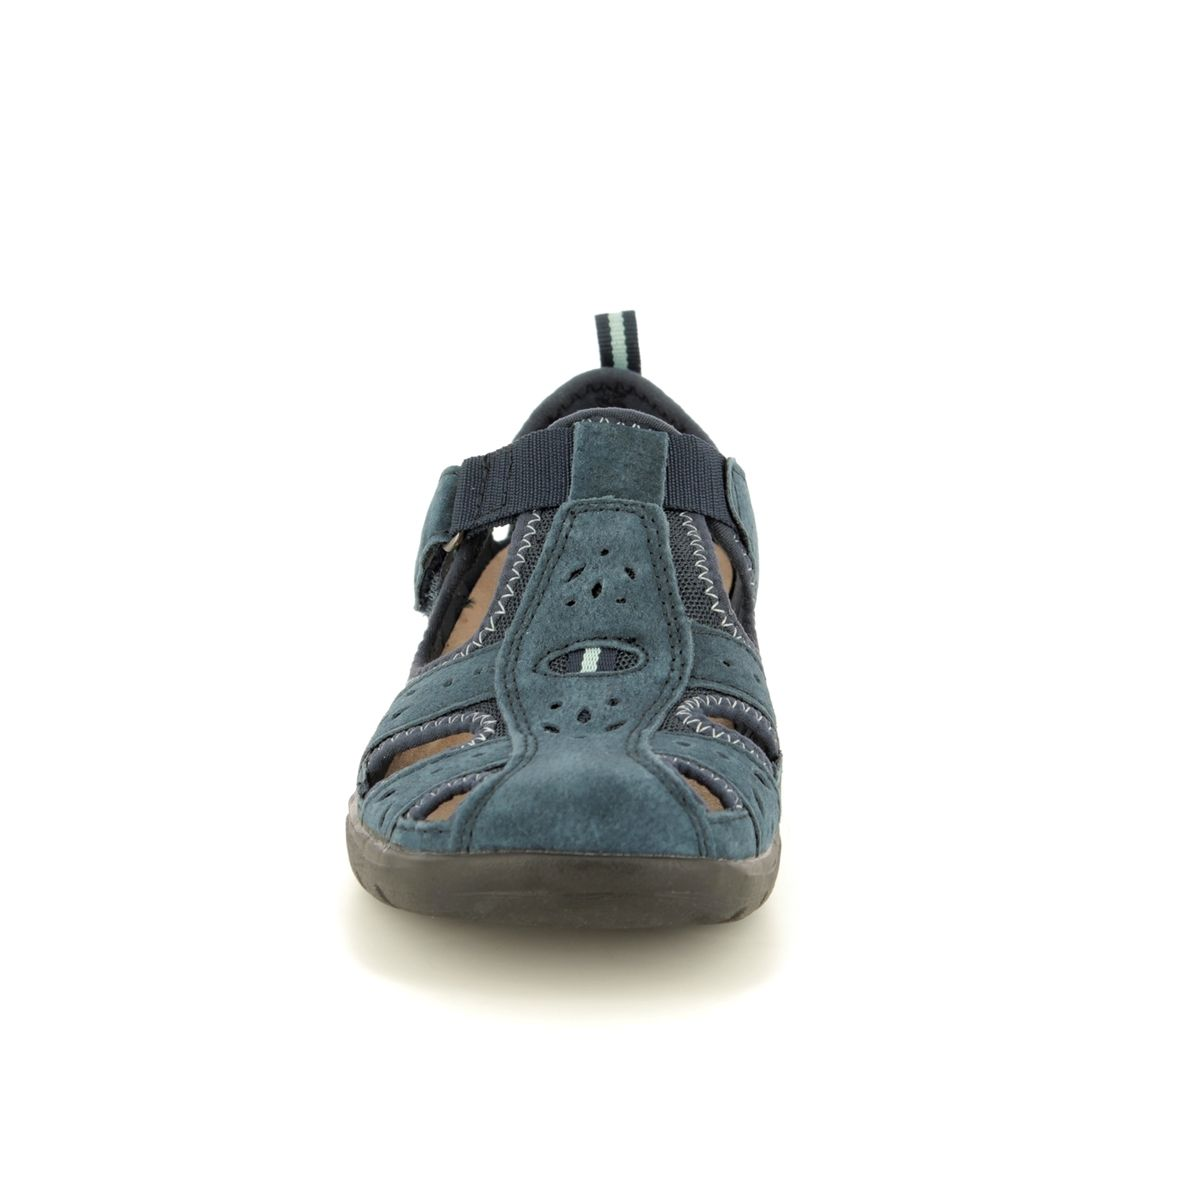 795f2bd2771f0 Earth Spirit Closed Toe Sandals - Navy - 30201/70 CLEVELAND 91